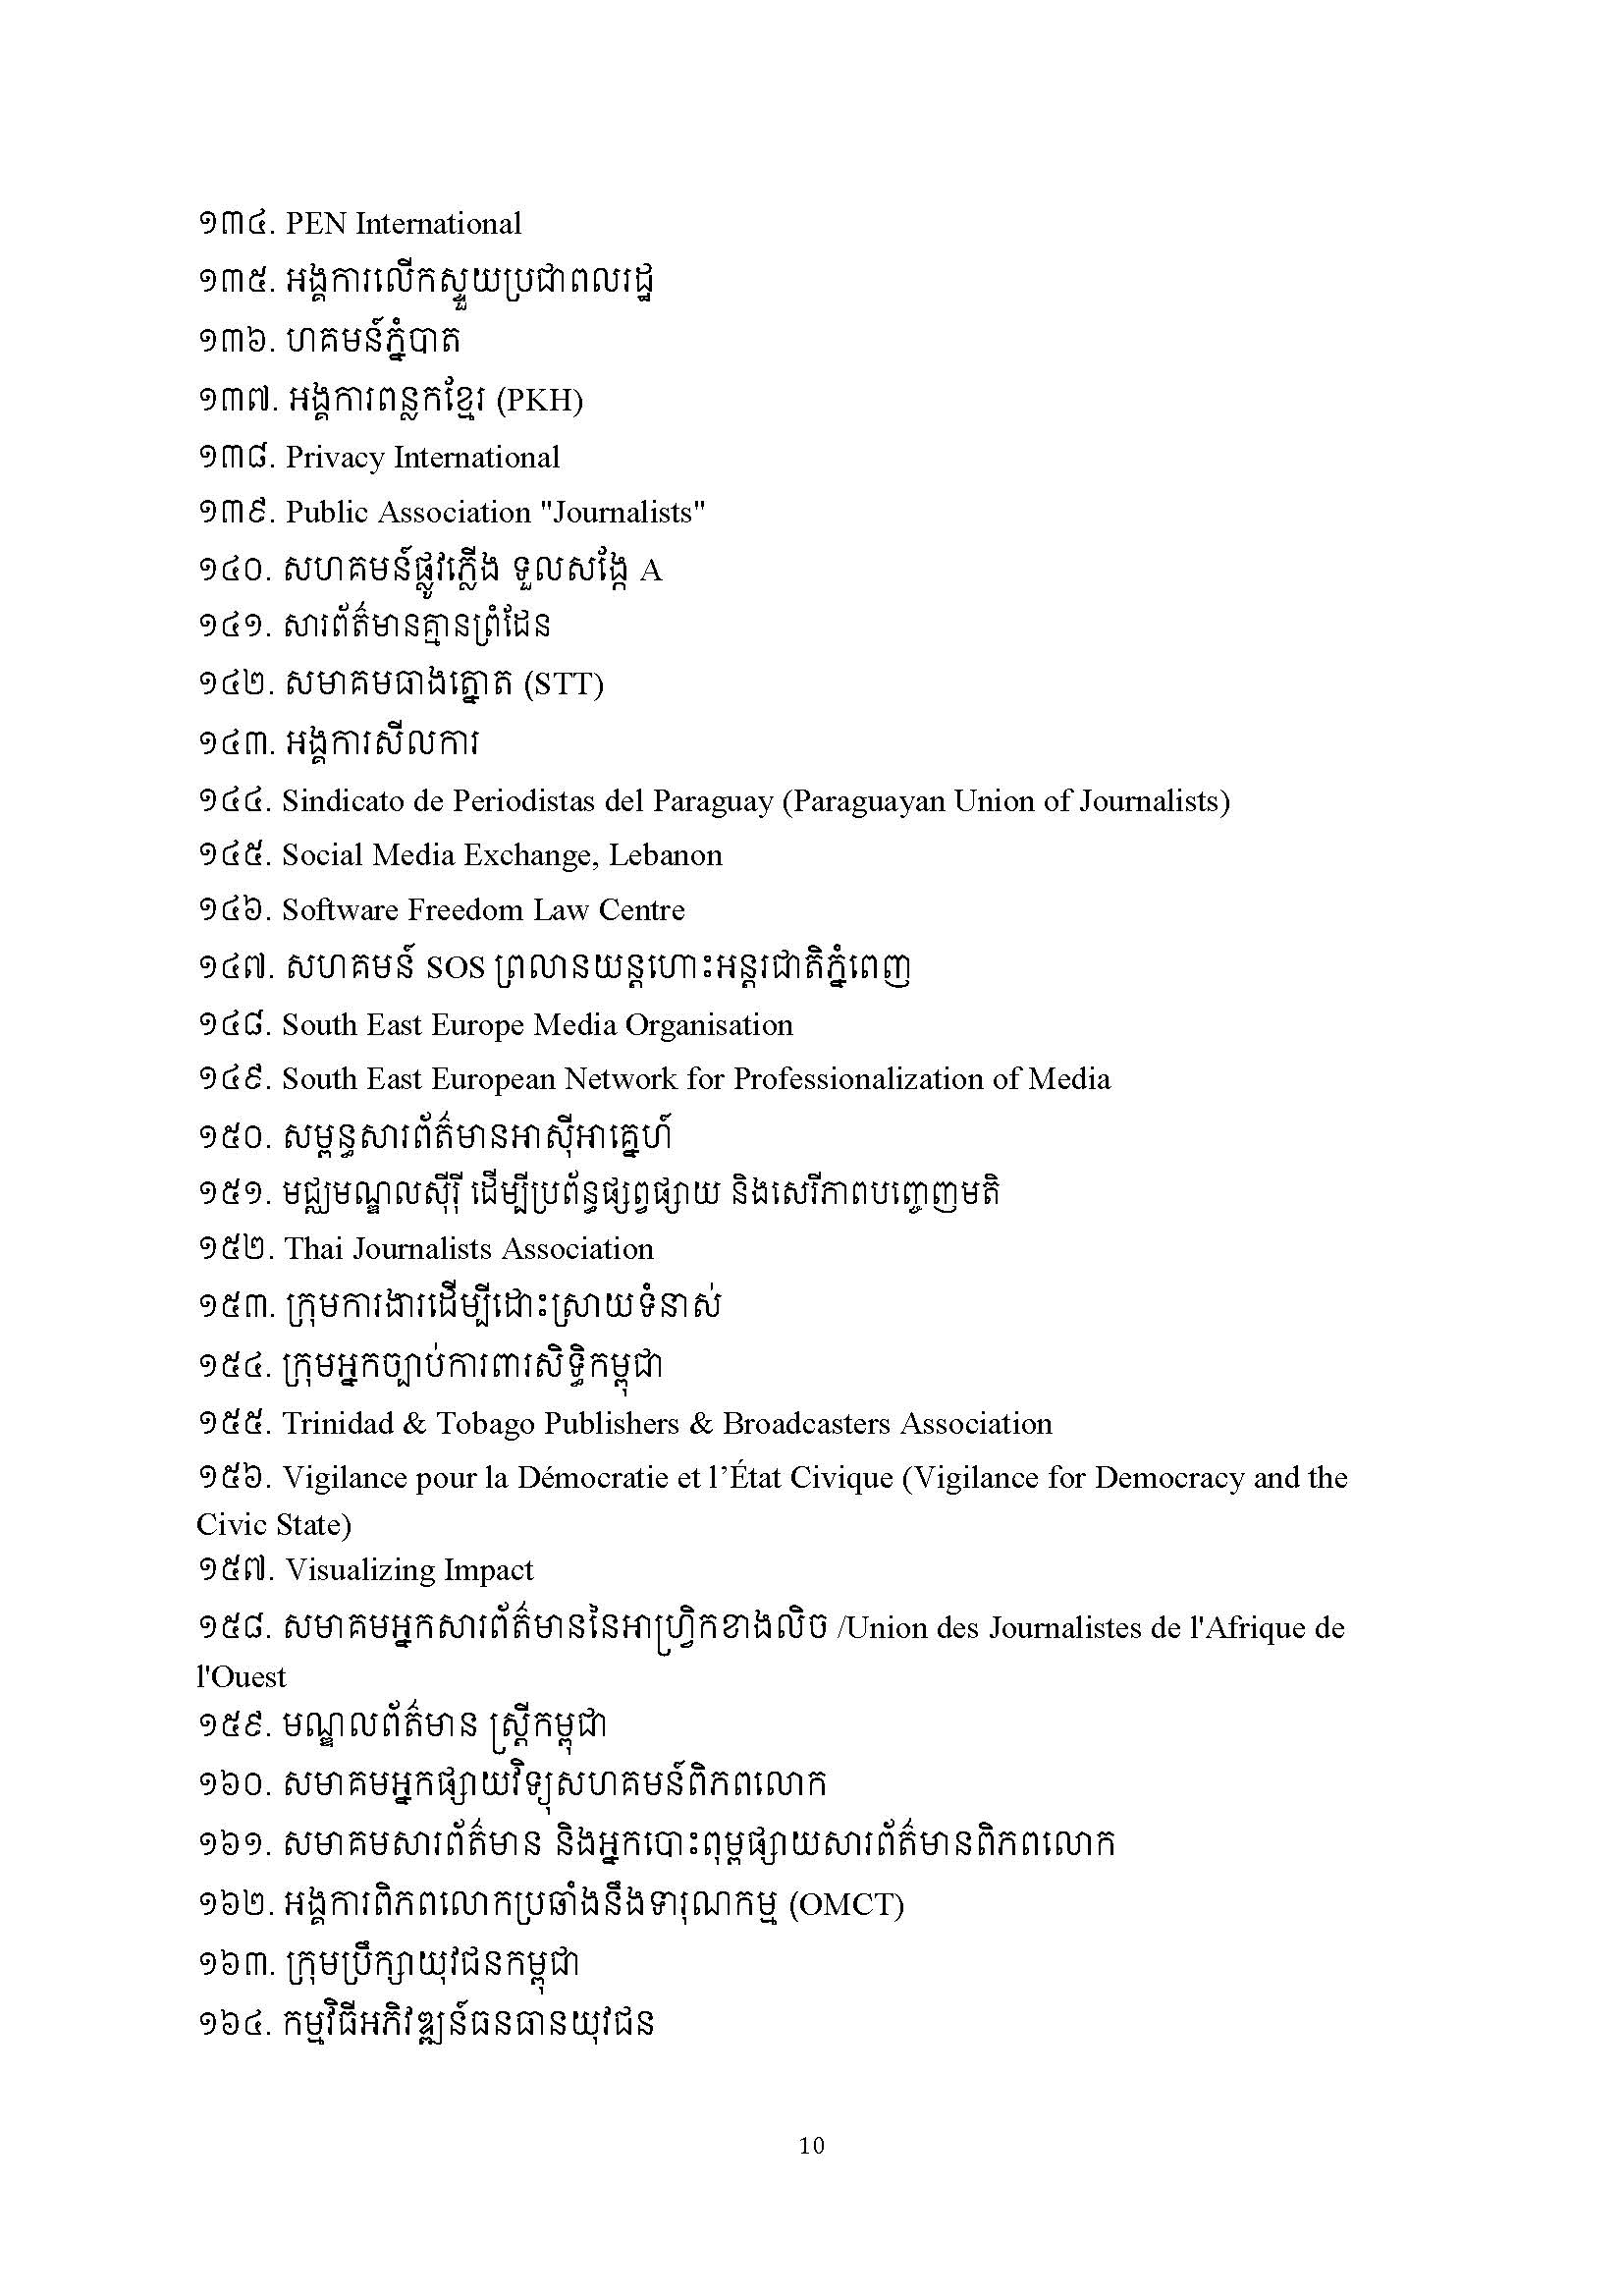 Joint Statement: Open Letter to Samdech Kralahom Sar Kheng